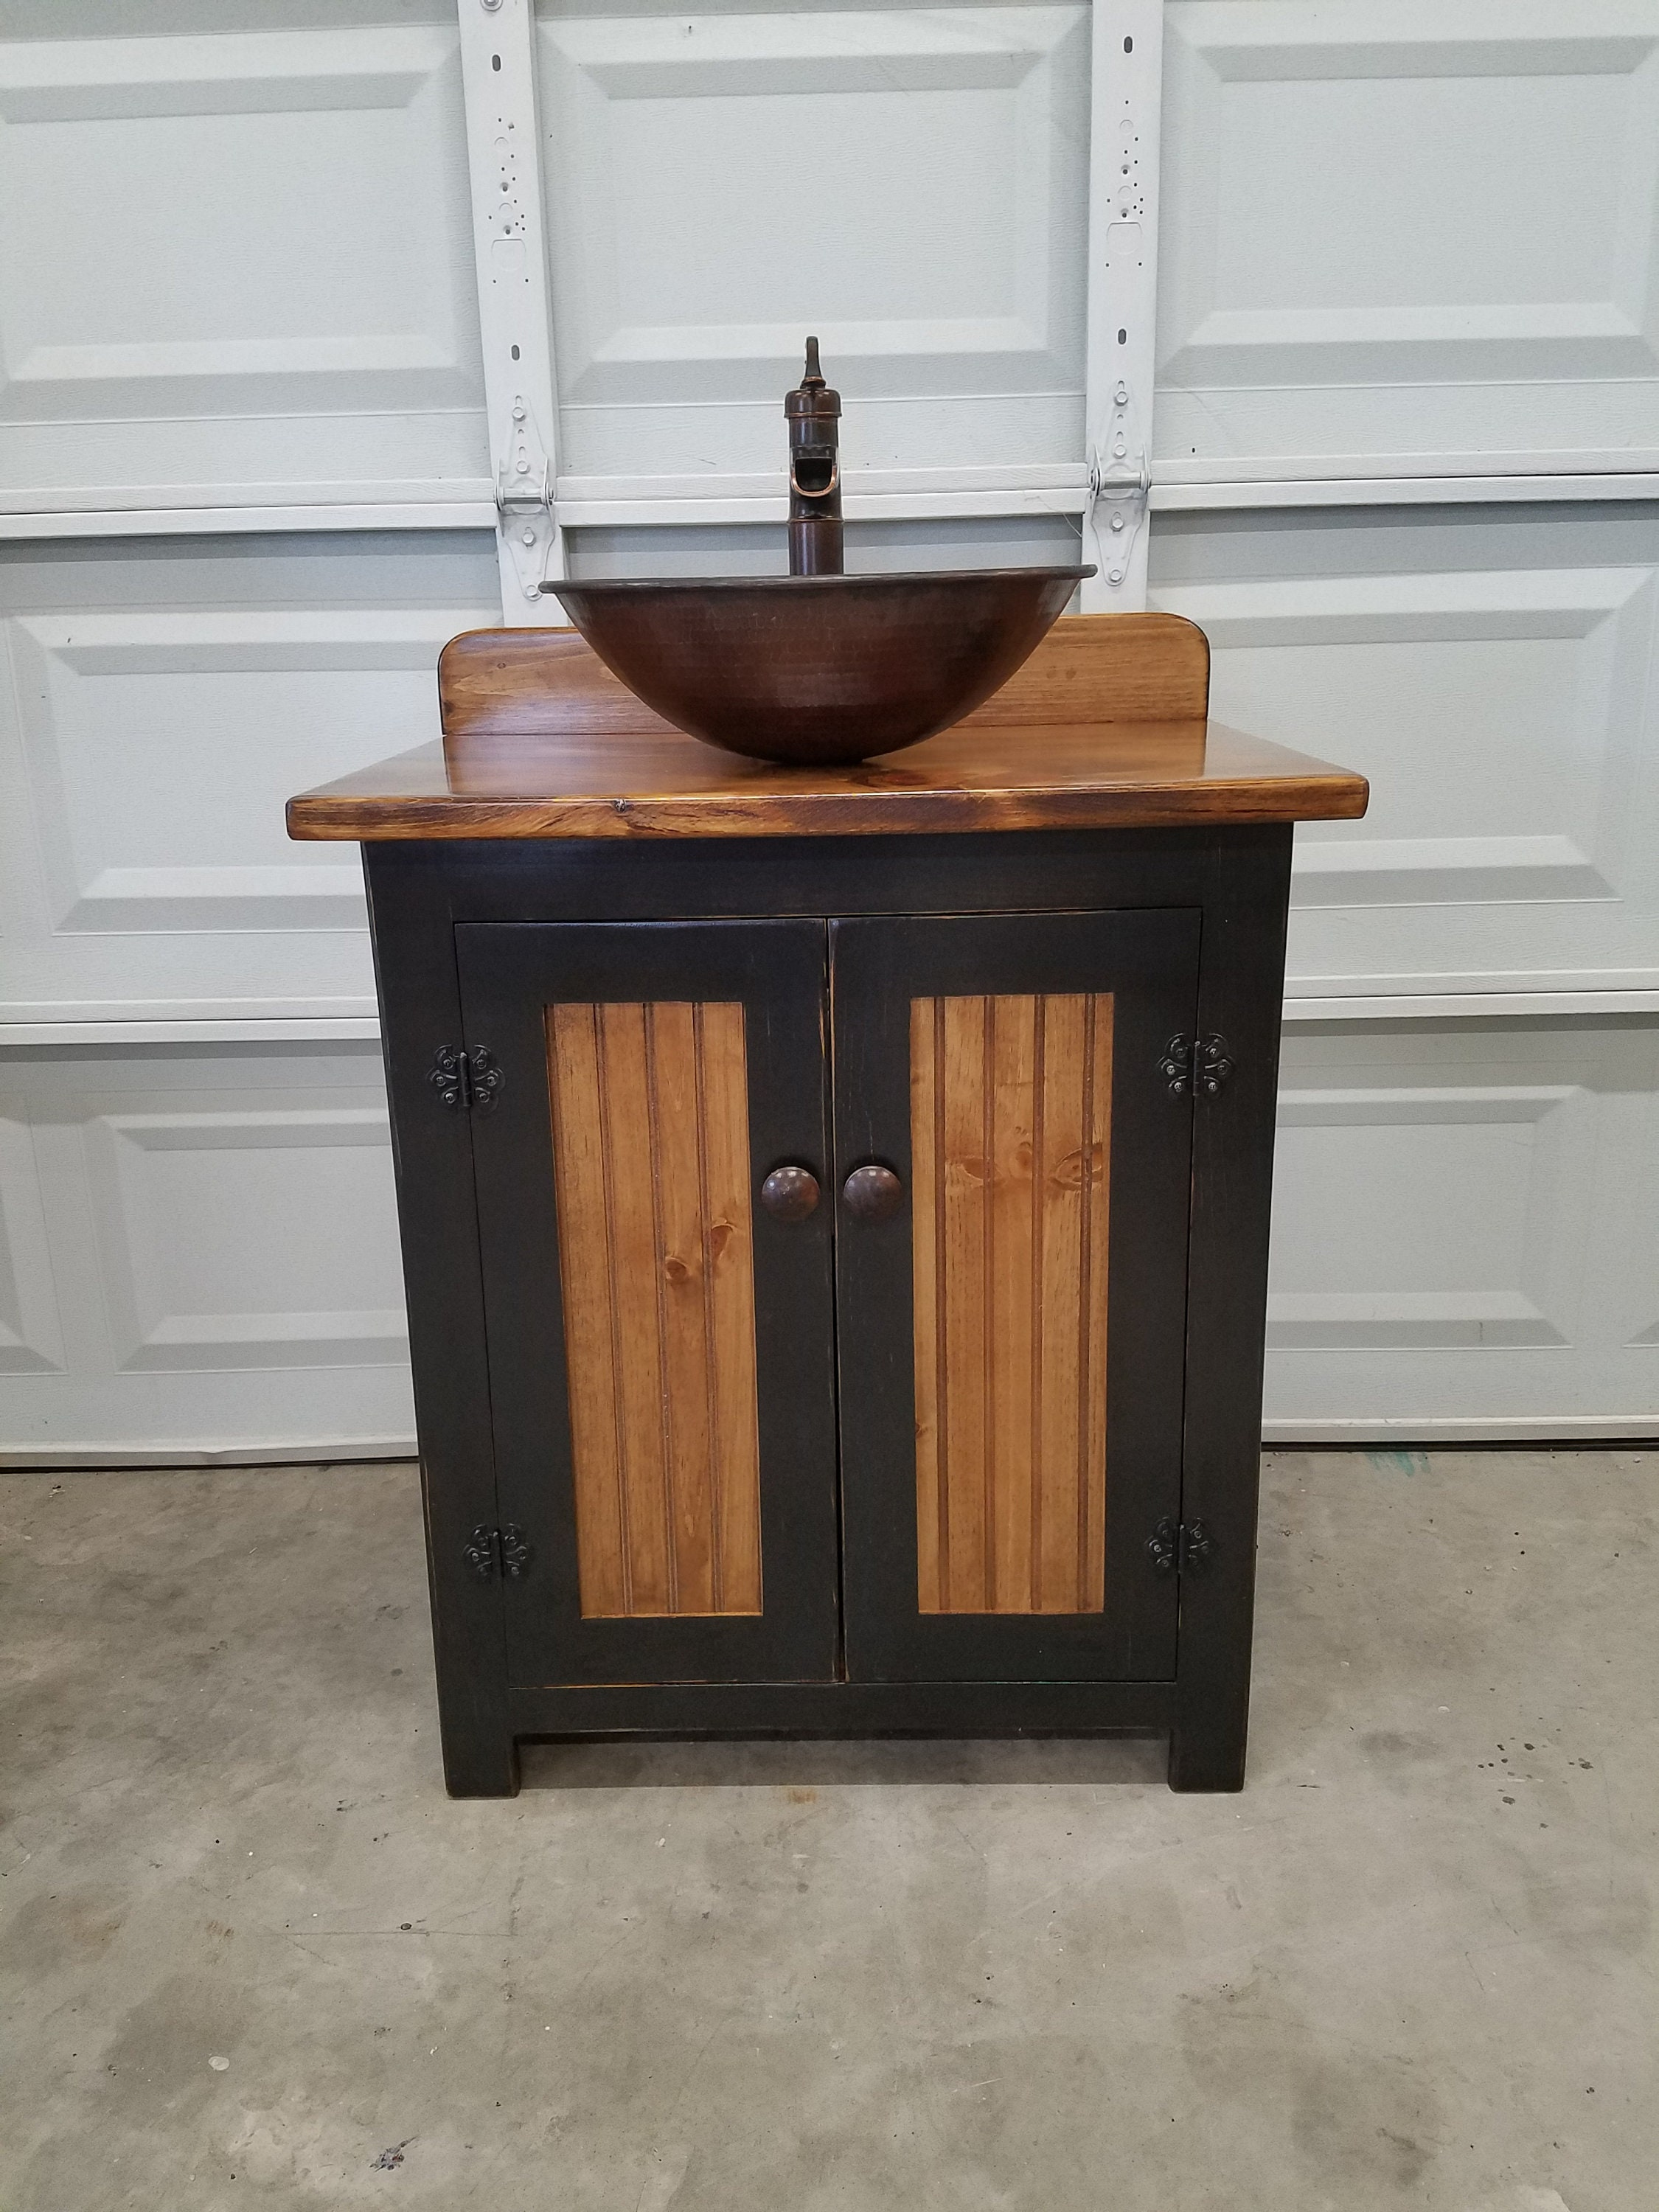 Rustic Bathroom Vanity 30 Farmhouse Vessel Copper Sink Pump Faucet Bathroom Vanity With Sink Sink Faucet Included In Price